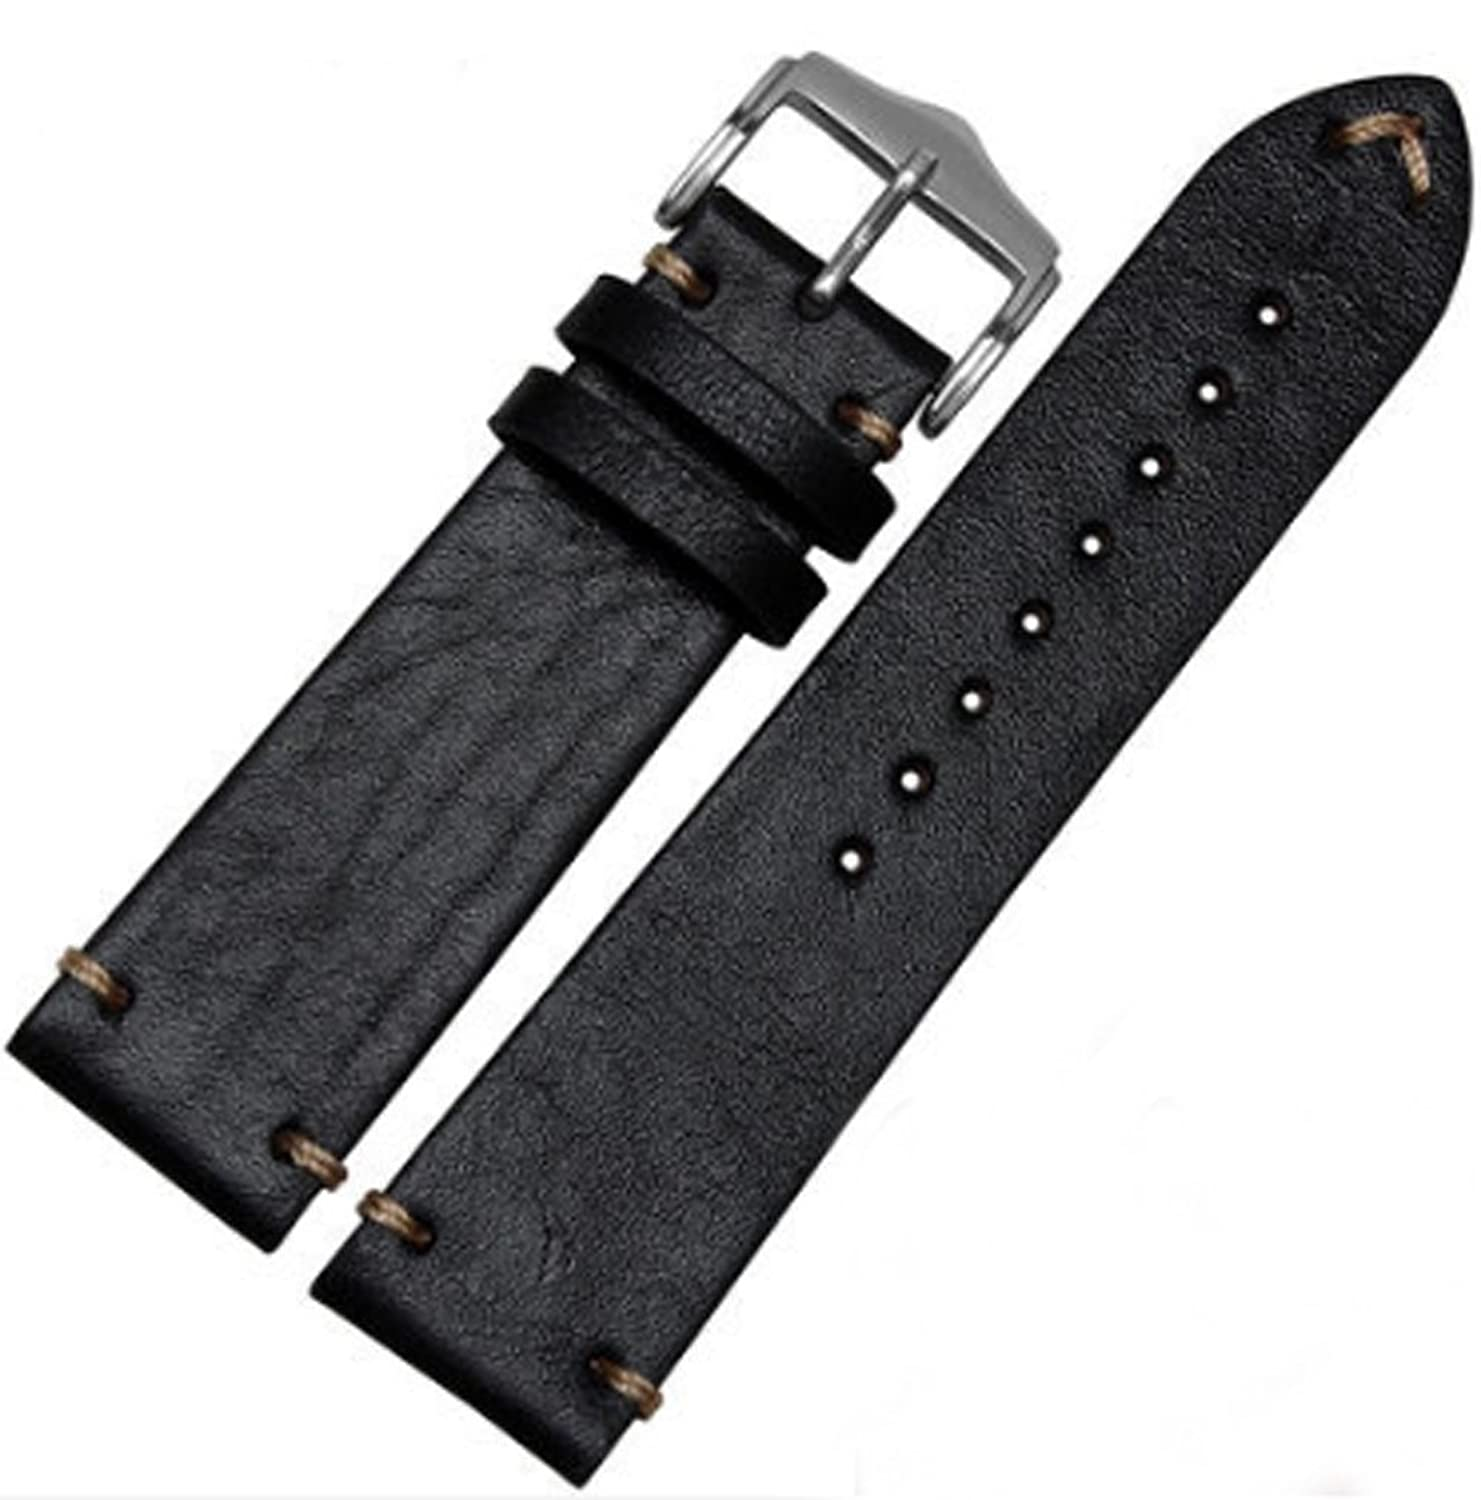 クラシックヴィンテージLeather Watch Band Strap for OMEGAまたはRolex 5513 1675 6542 1680 1803 Submariner GMT 20mm ブラック  ブラック 20mm B078N35LY1